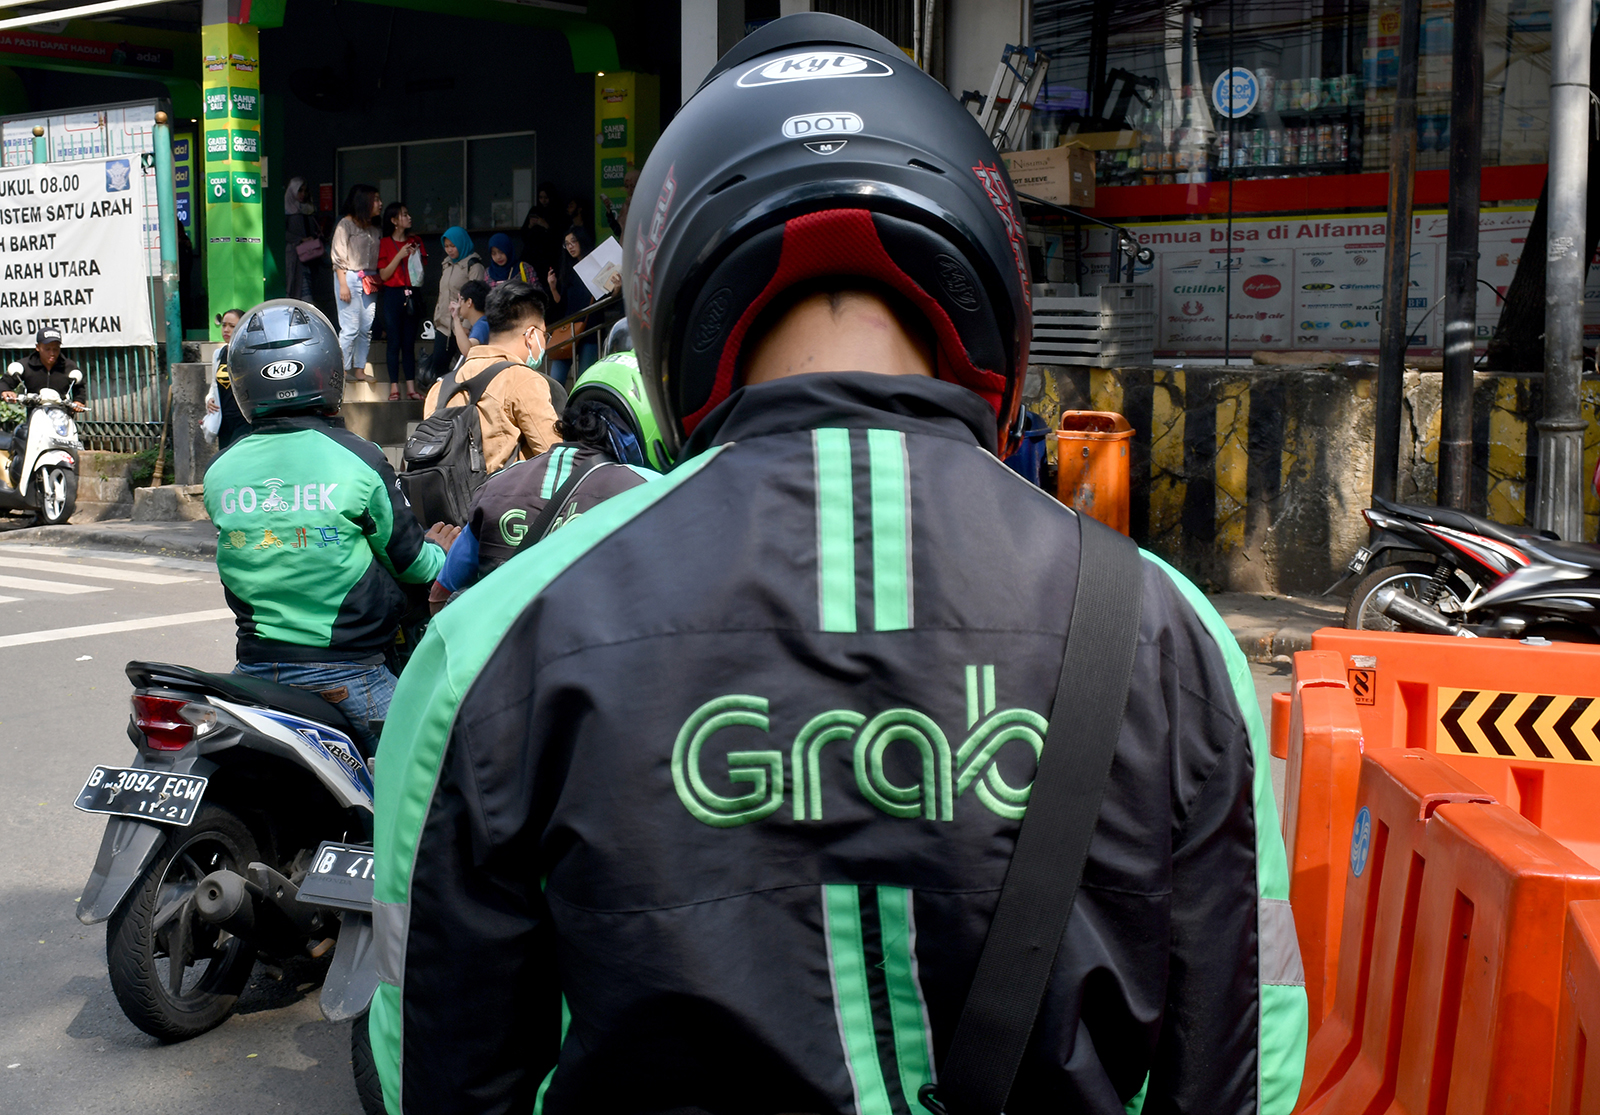 Grab is going public in $40 billion SPAC deal, the biggest on record